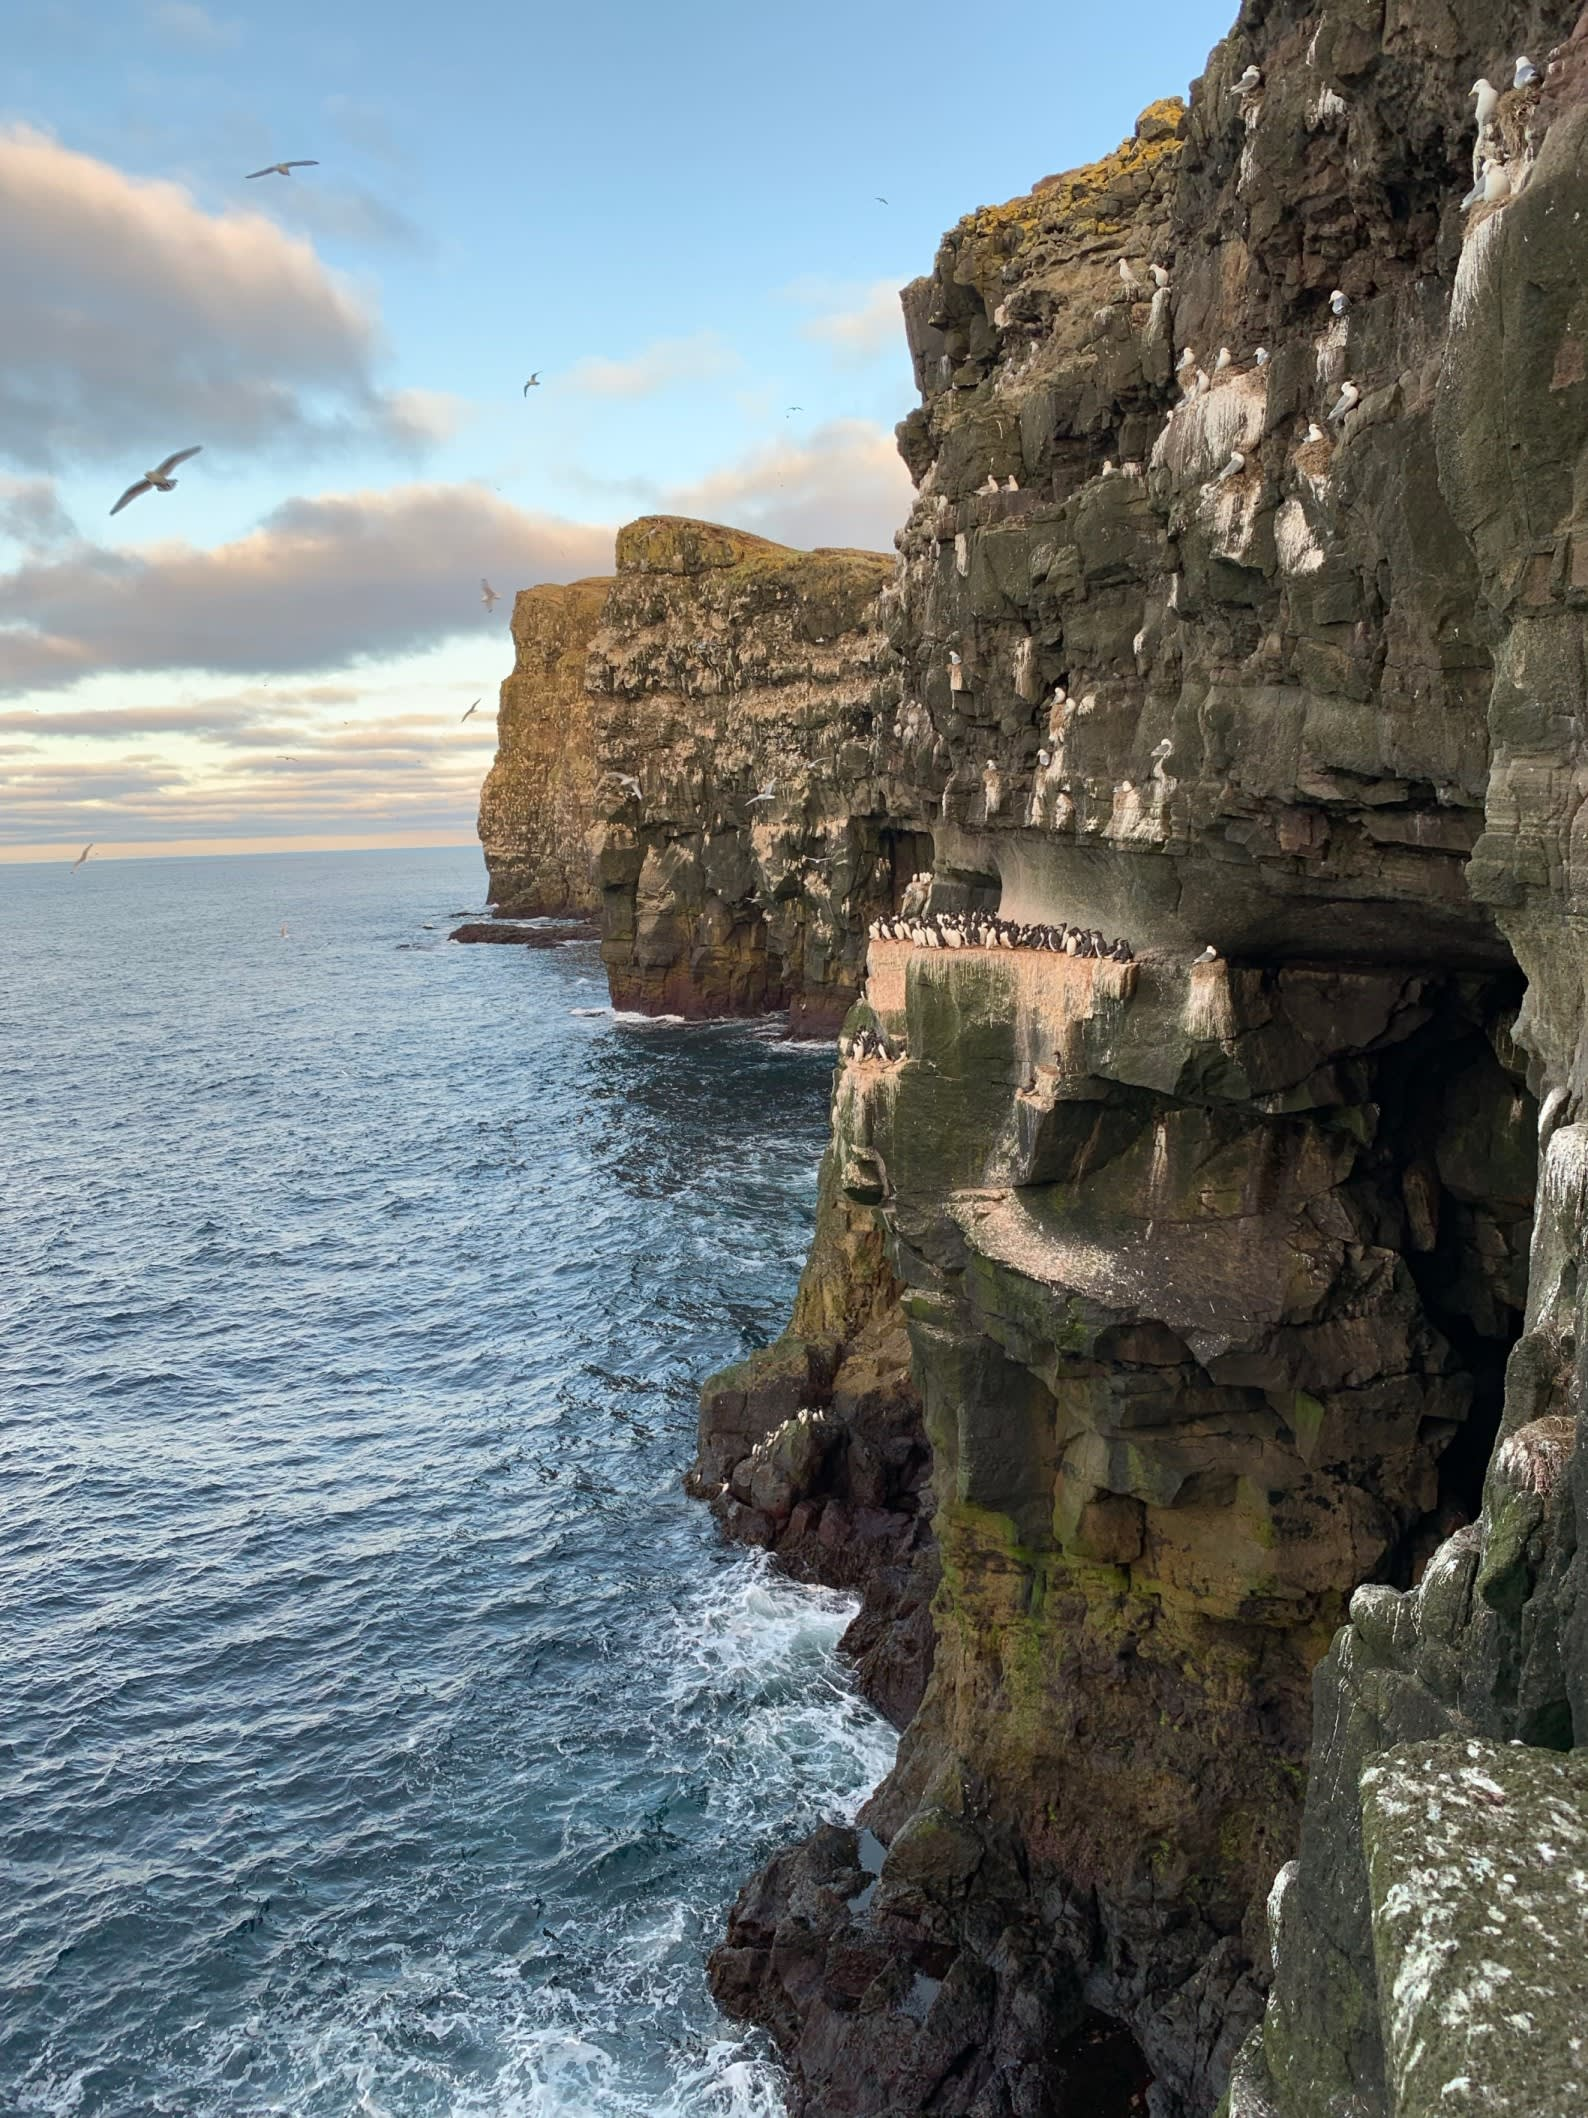 puffins gather together on the cliff edges of Iceland's rocky coastline